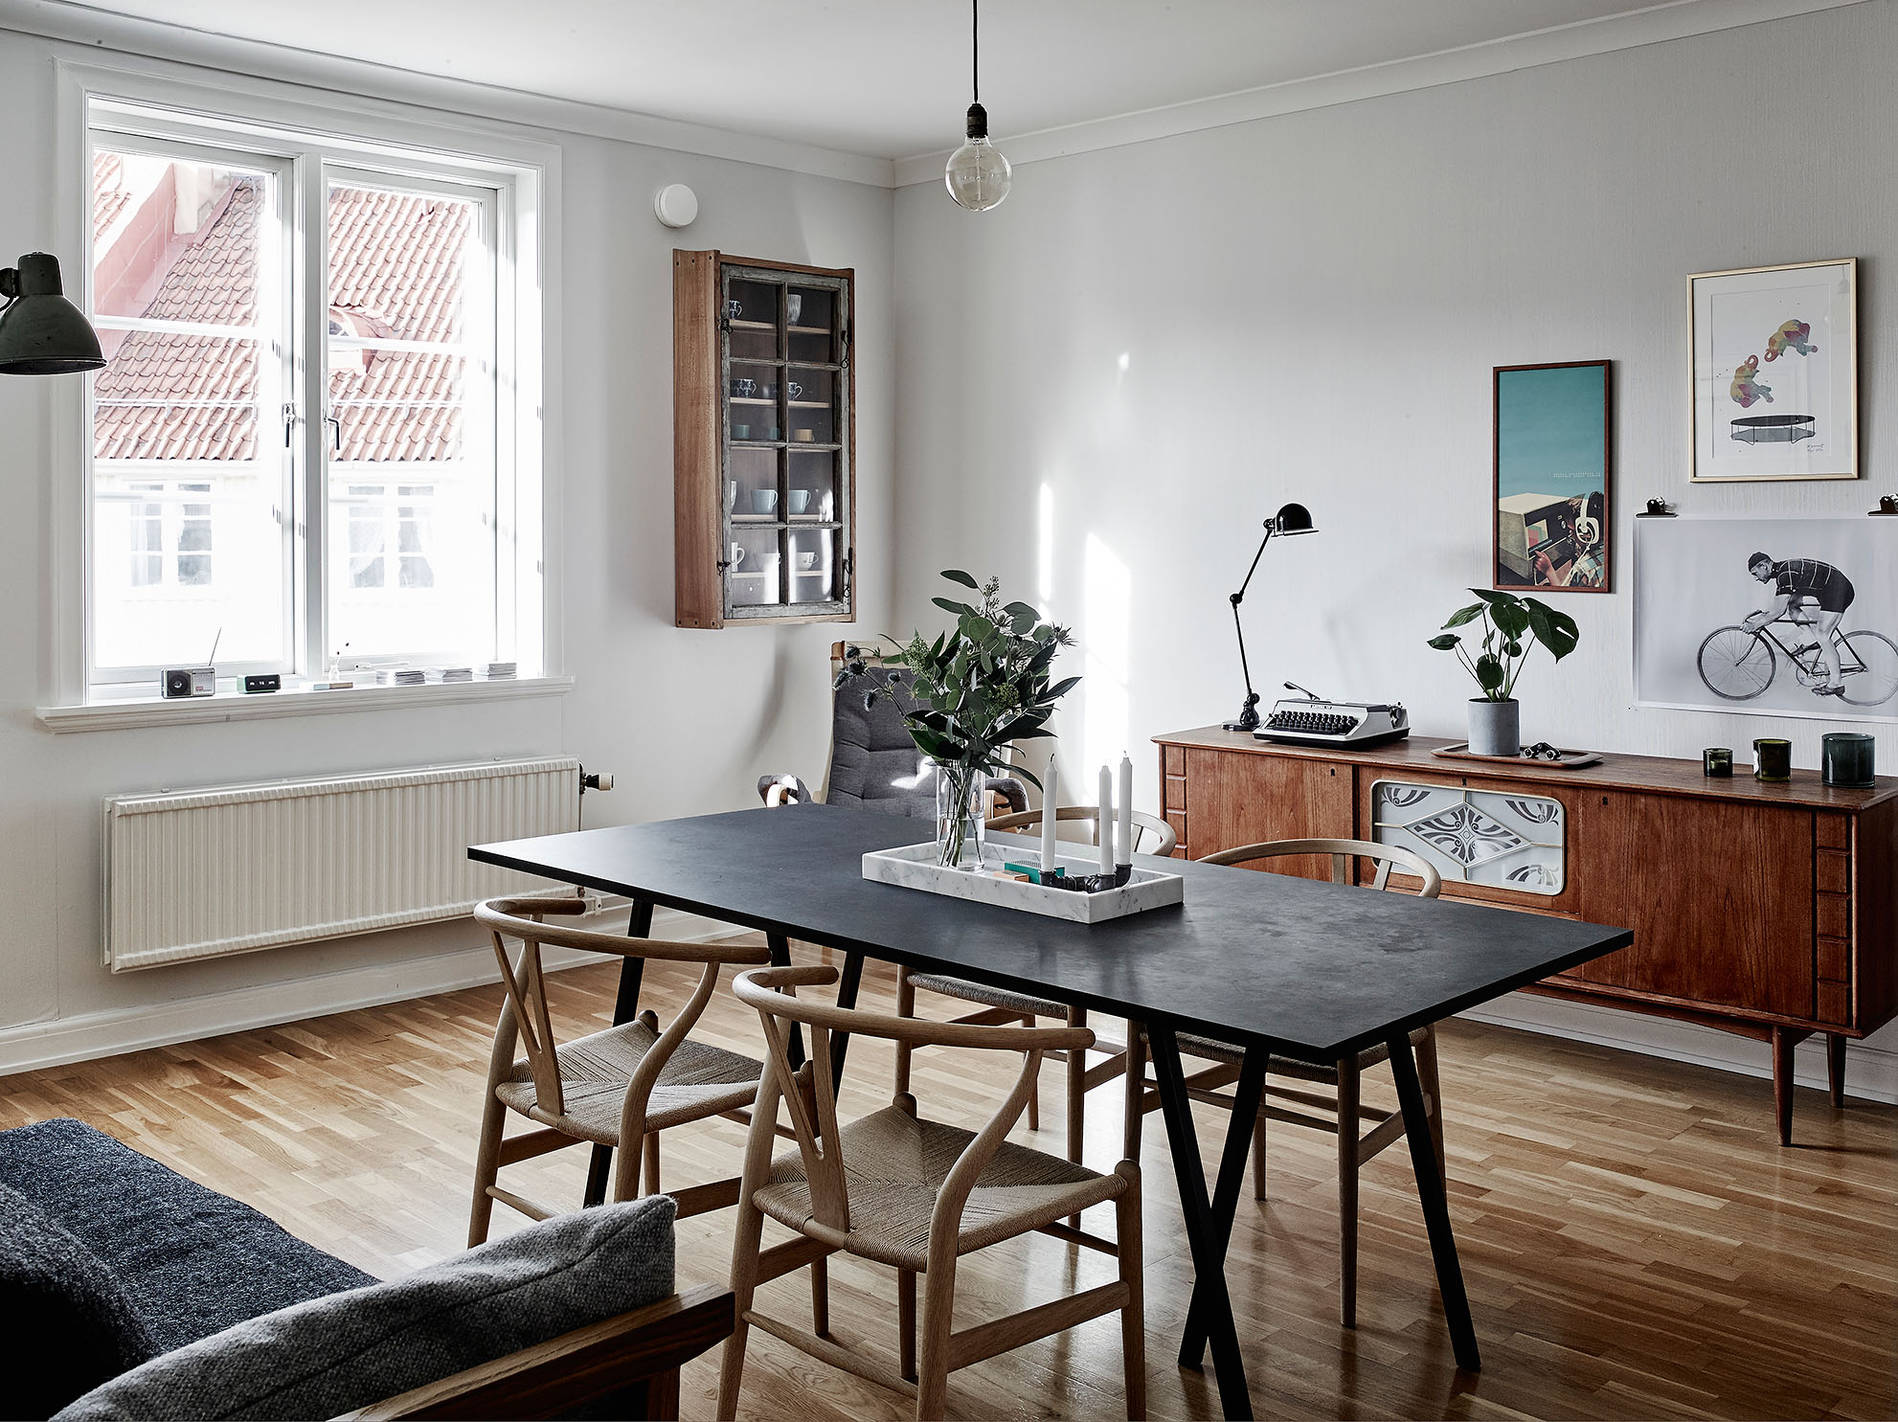 Dark woods and a vintage vibe coco lapine designcoco for Vintage apartments